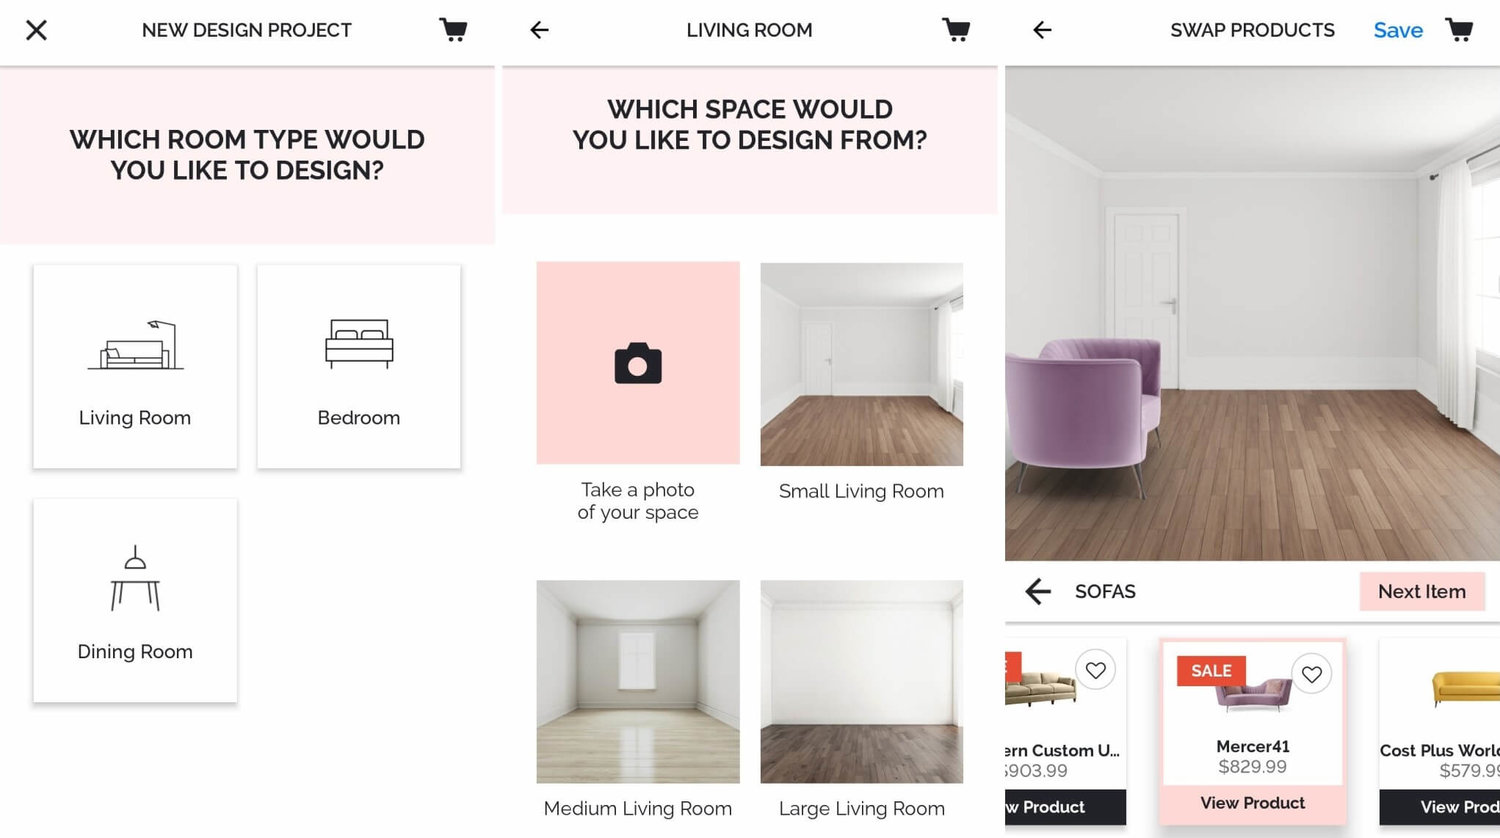 Apartment Design Apps: Your Ultimate List - Updater